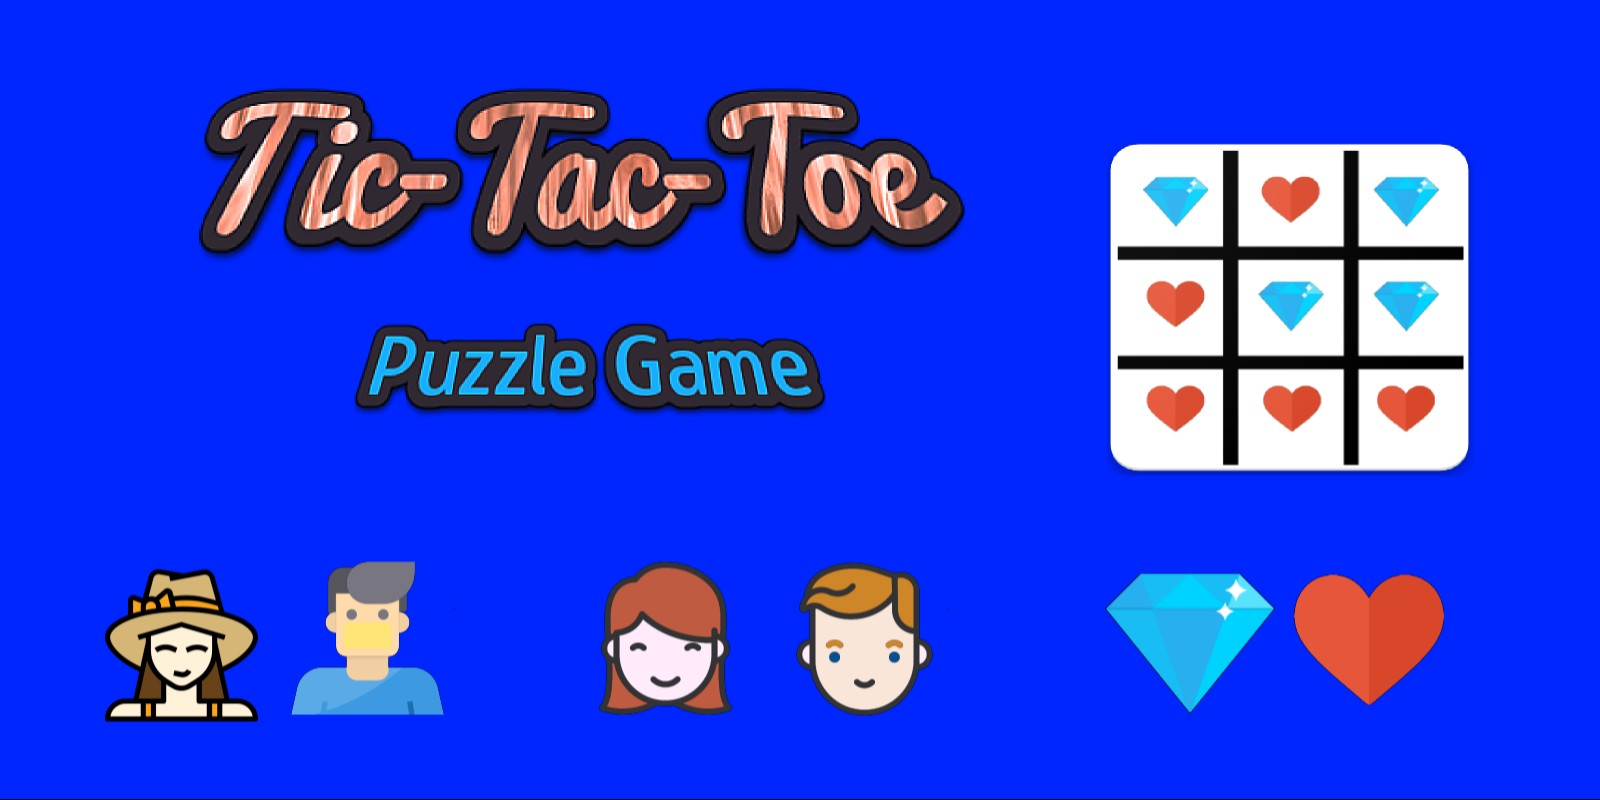 Tic-Tac-Toe Android Puzzle Game Template